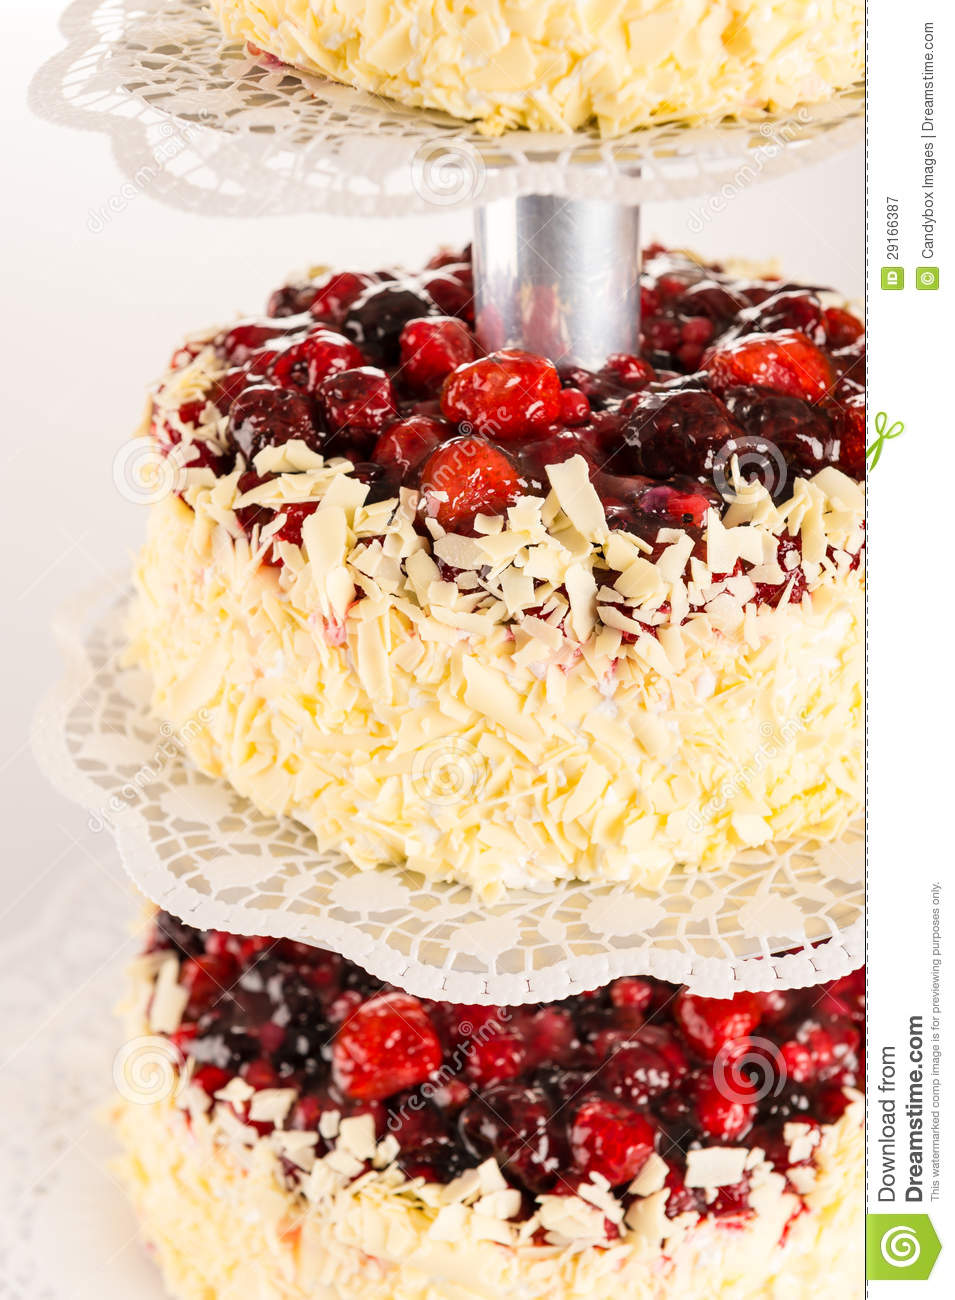 Wedding Cake White Chocolate And Red Berries Royalty Free Stock ...